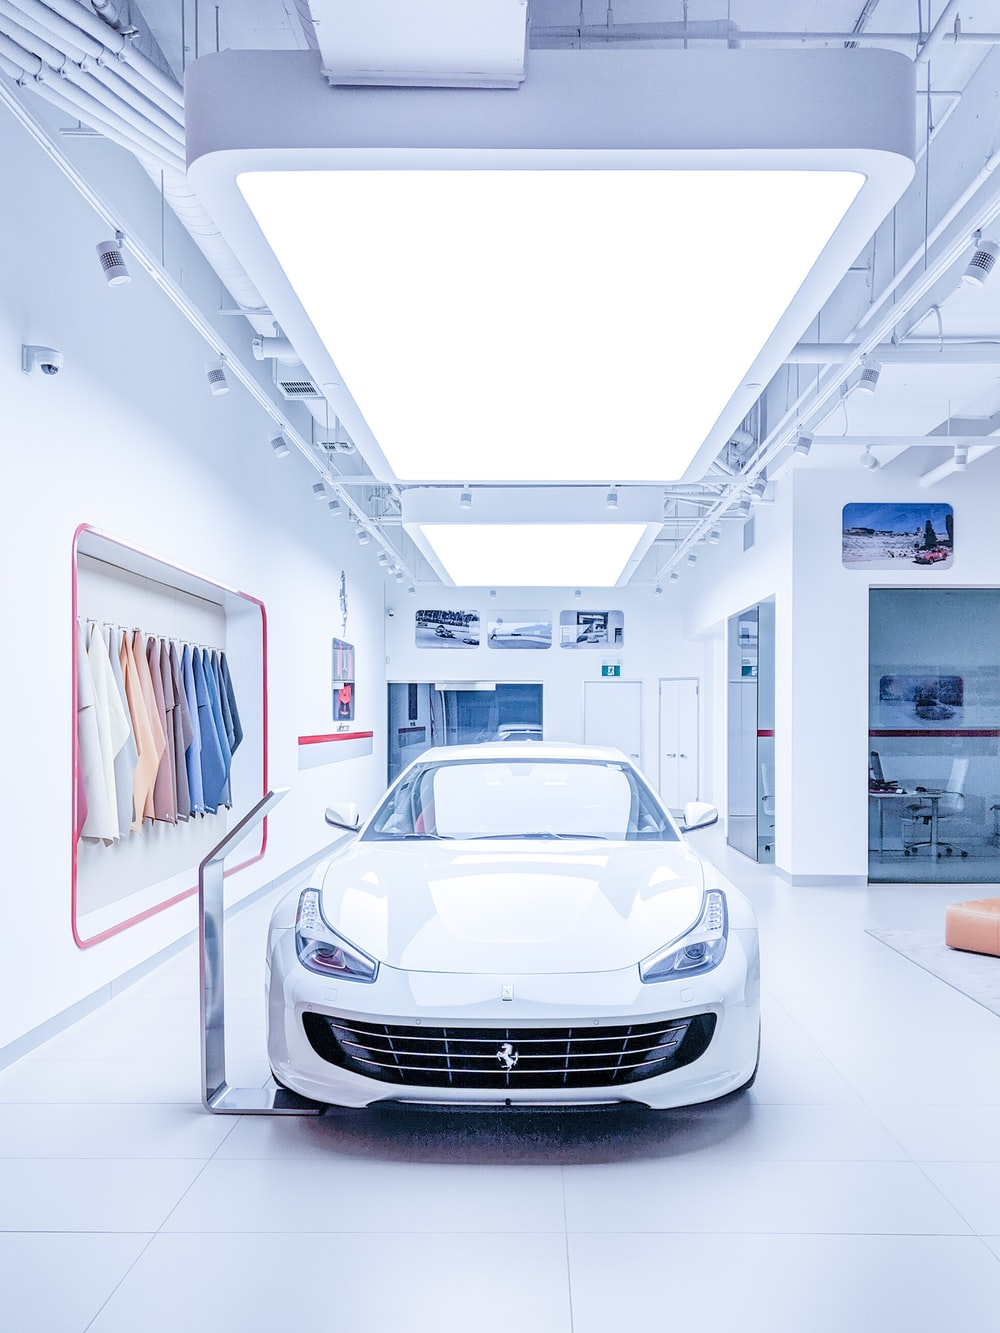 white Ferrari inside white building with hanged clothes